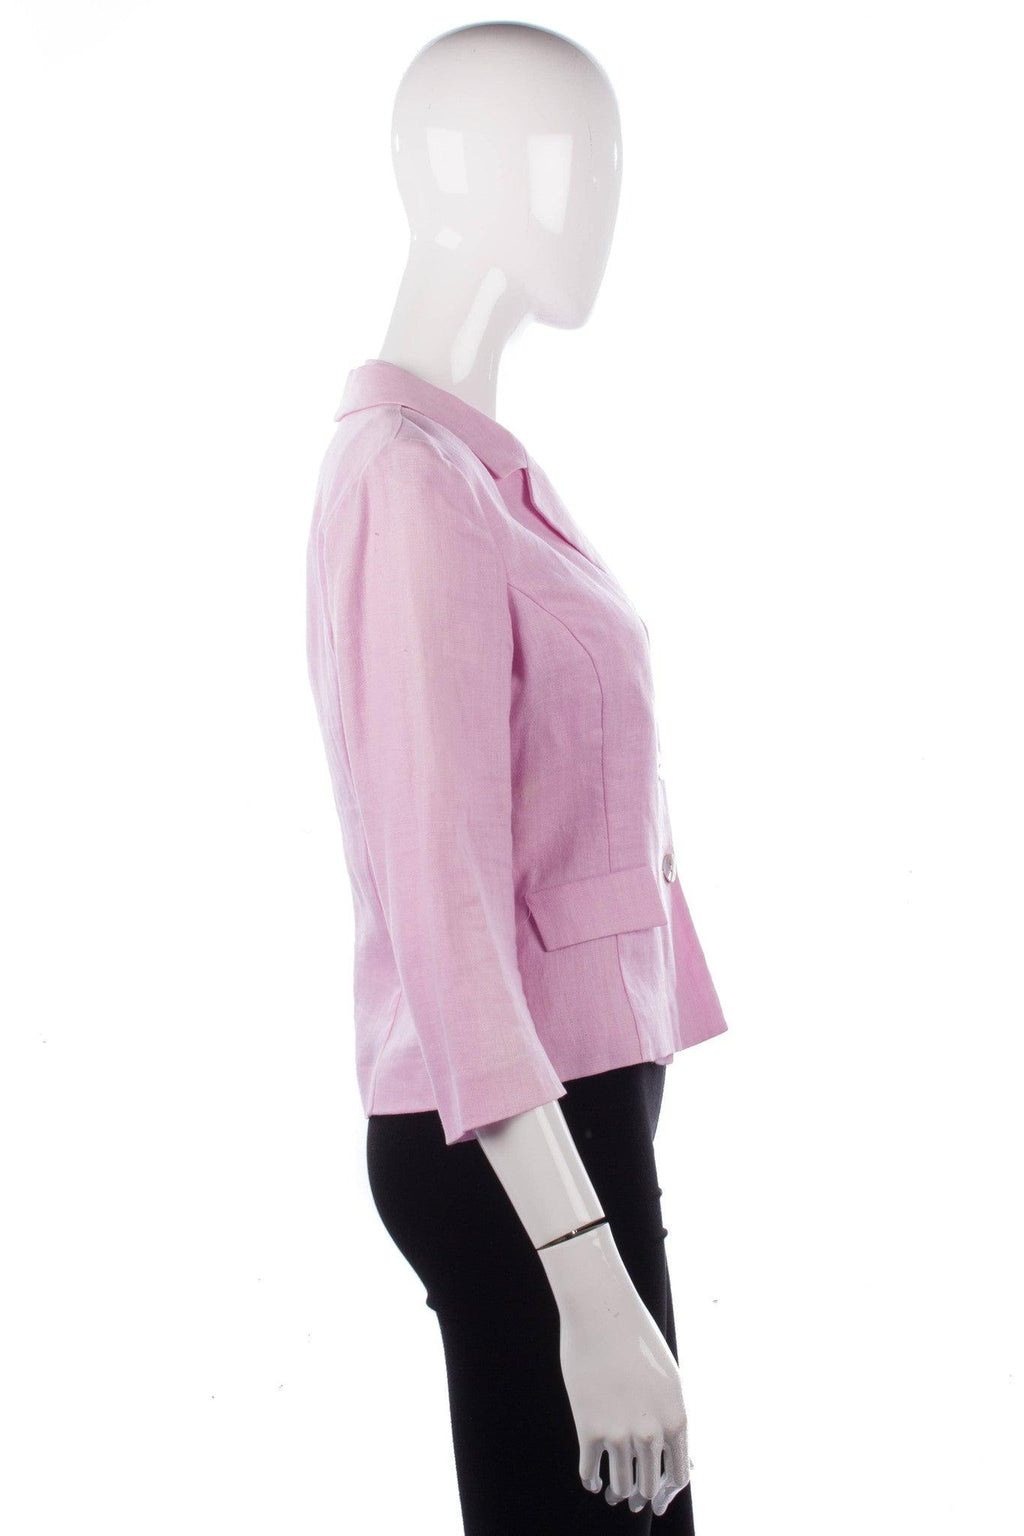 Renato Nucci Linen pink waistcoat and matching jacket size 40 side